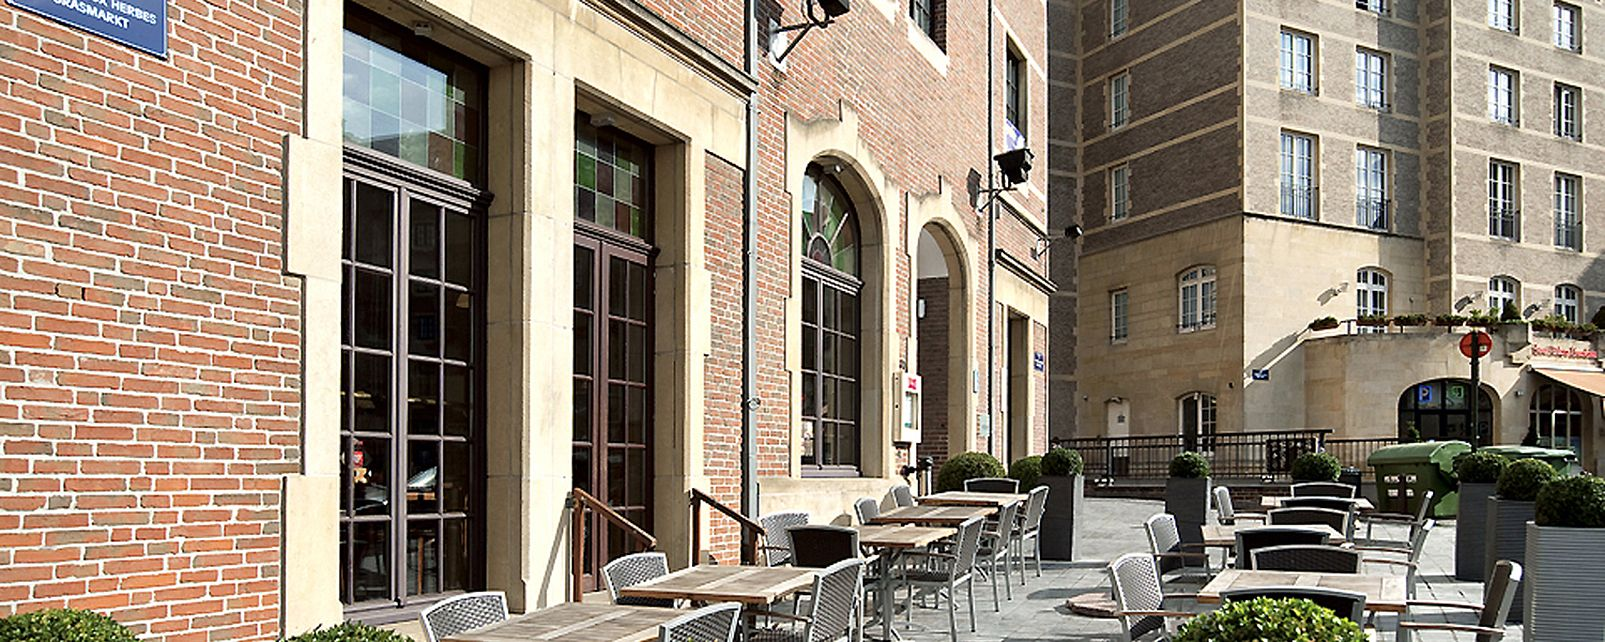 Hotel Ibis Brussels off Grand' Place